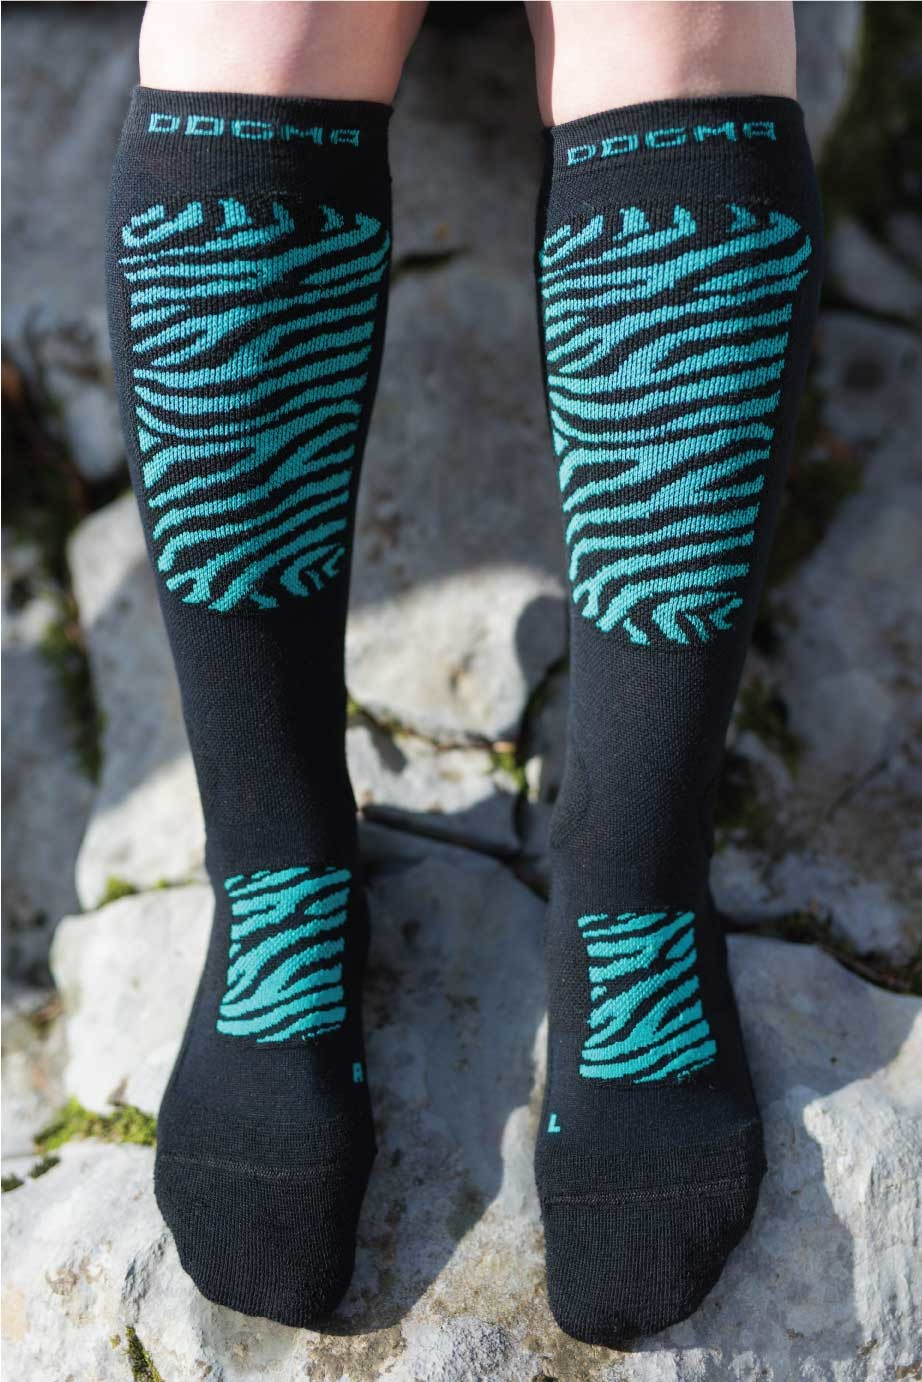 Dogmasocks Snow Eater winter socks for women. with mint tiger design Full front picture of tiger mint design